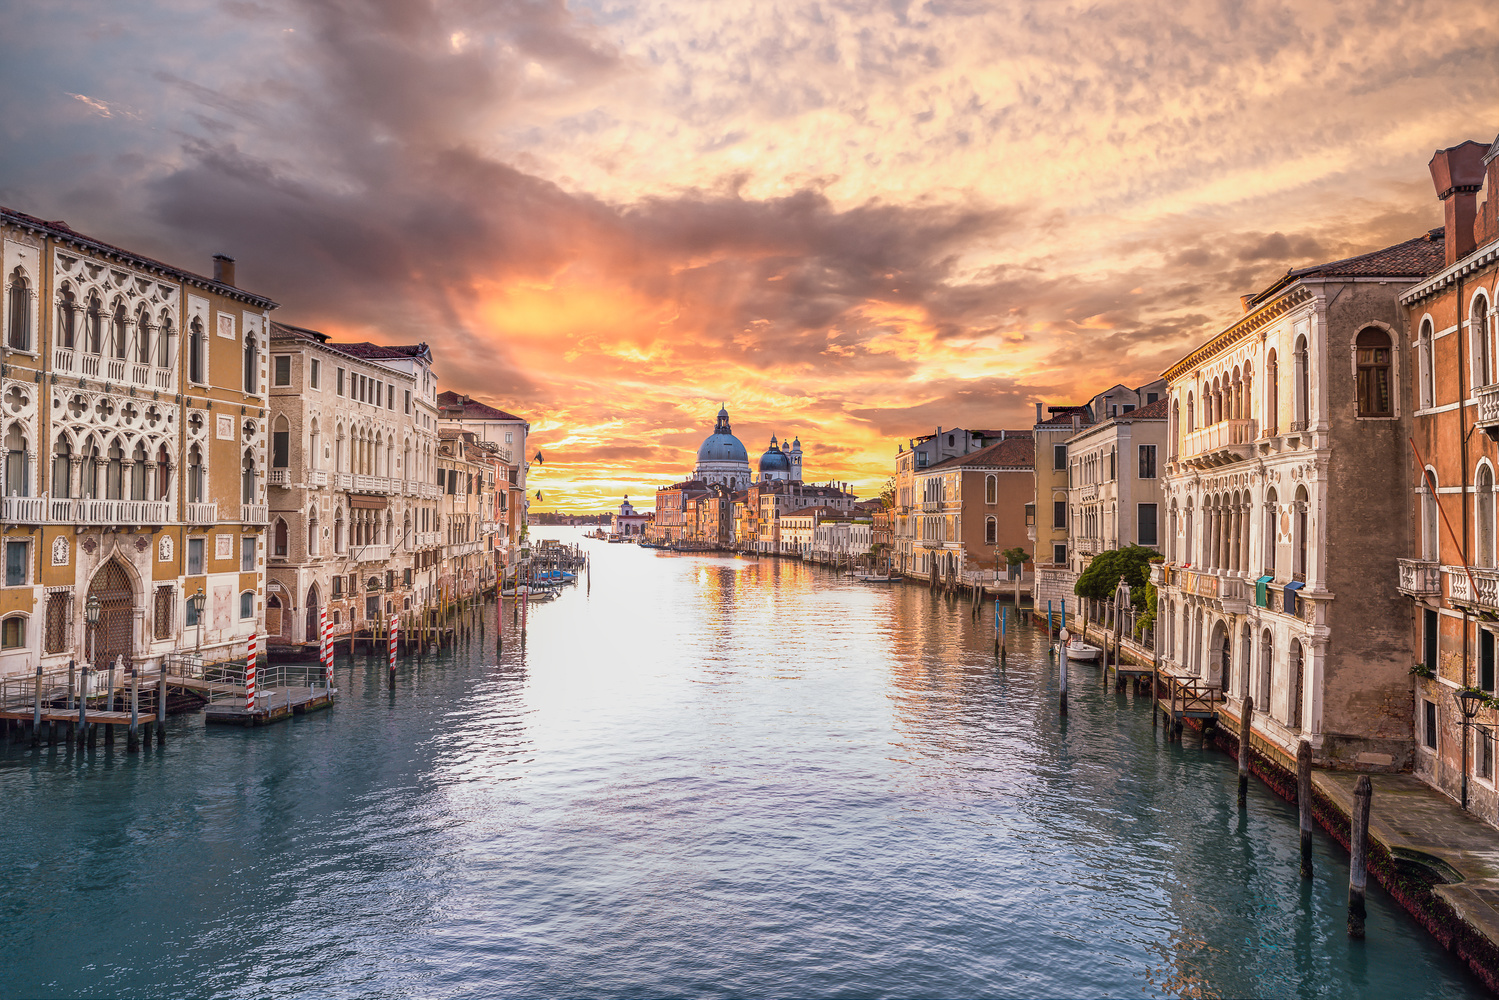 Good Morning Venice by Philip Young